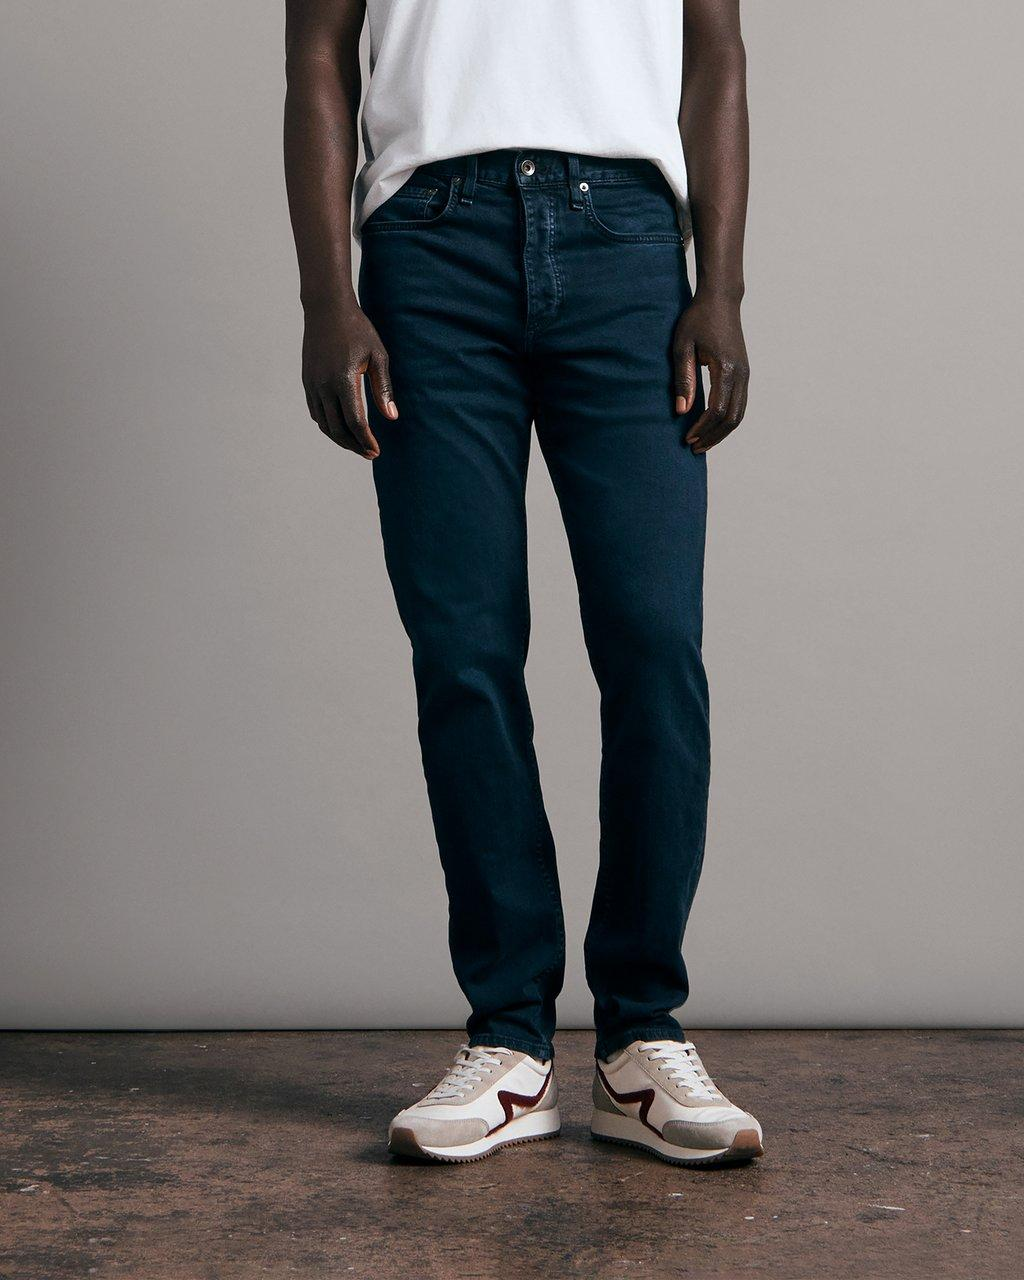 FIT 2 IN BAYVIEW - 30 INCH INSEAM AVAILABLE